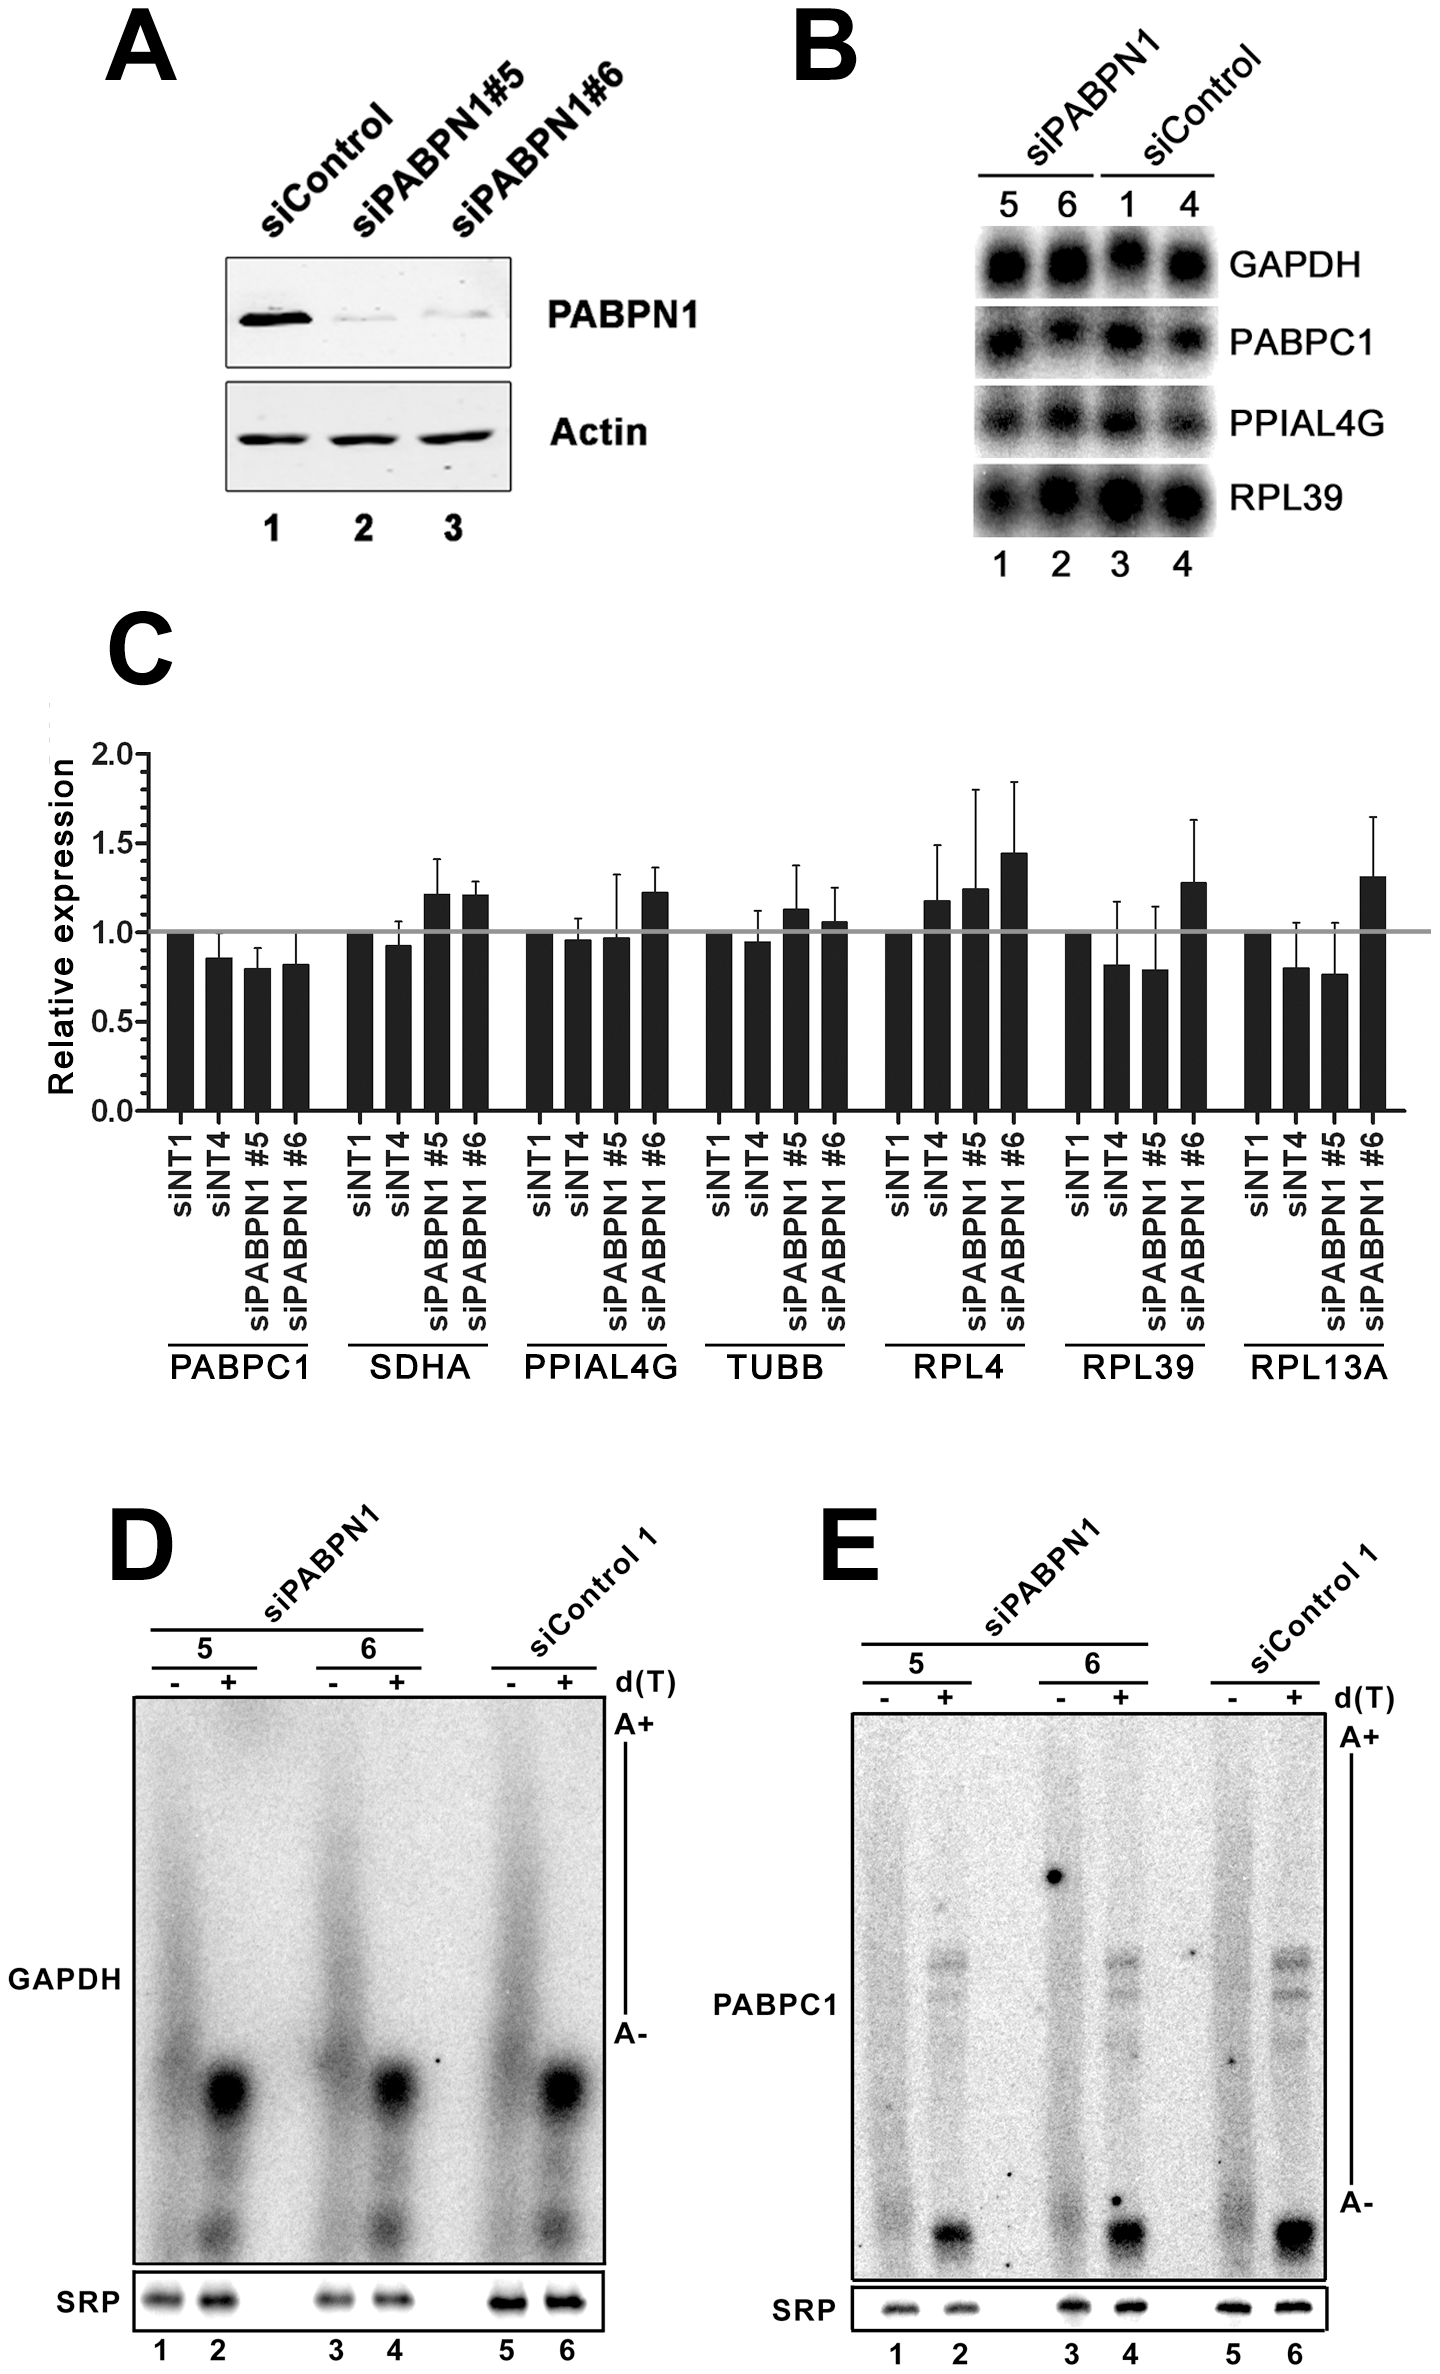 Expression and polyadenylation of housekeeping genes in PABPN1–depleted cells.